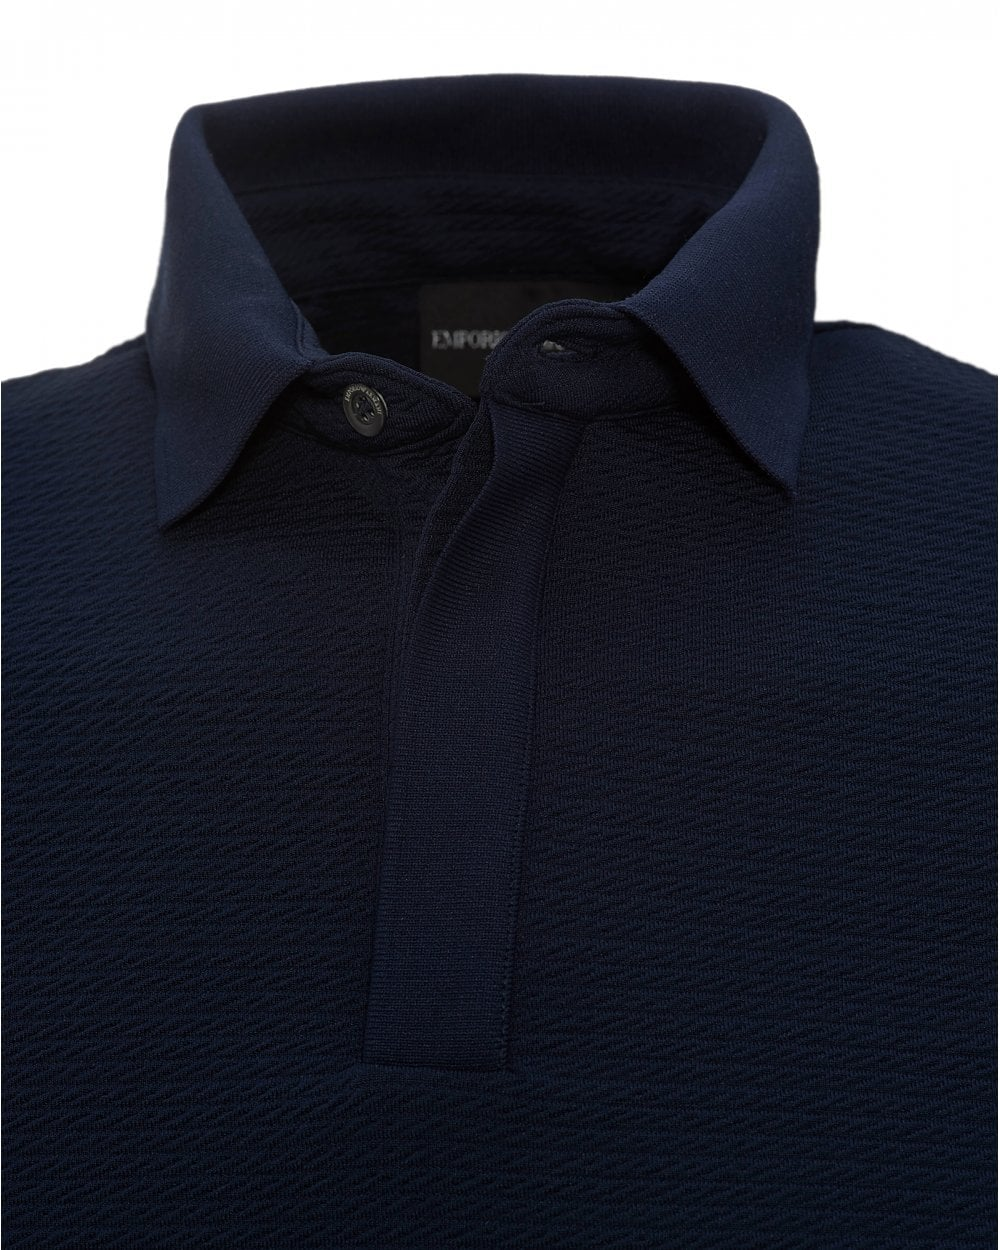 2a8b2e7c44 Mens Cotton Waffle Knit Pattern Polo Shirt